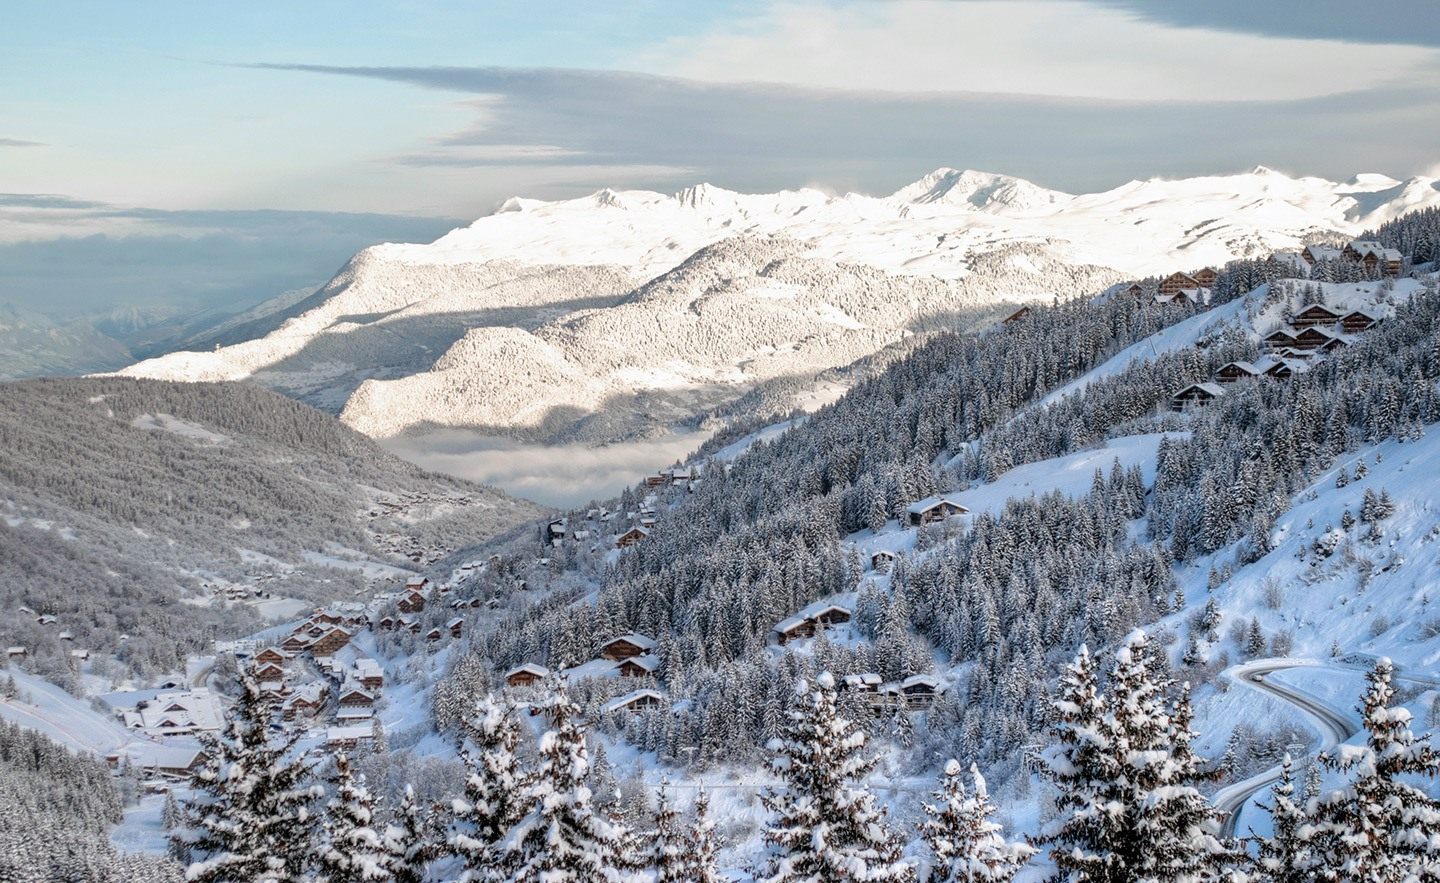 Views down the Meribel Valley, French Alps